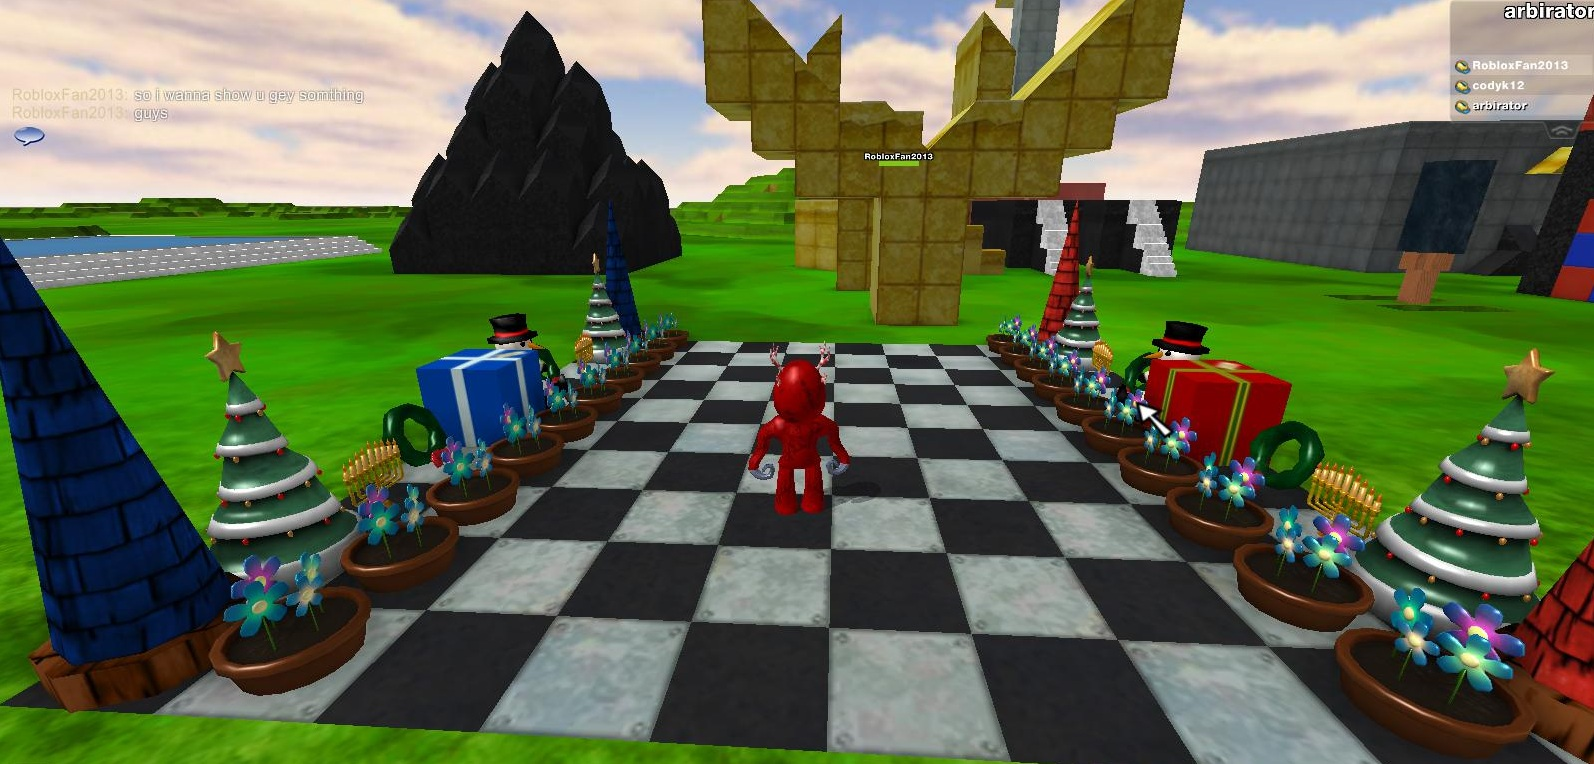 Roblox gear id code list bing images - Visiting One Of The Many Personal Build Servers